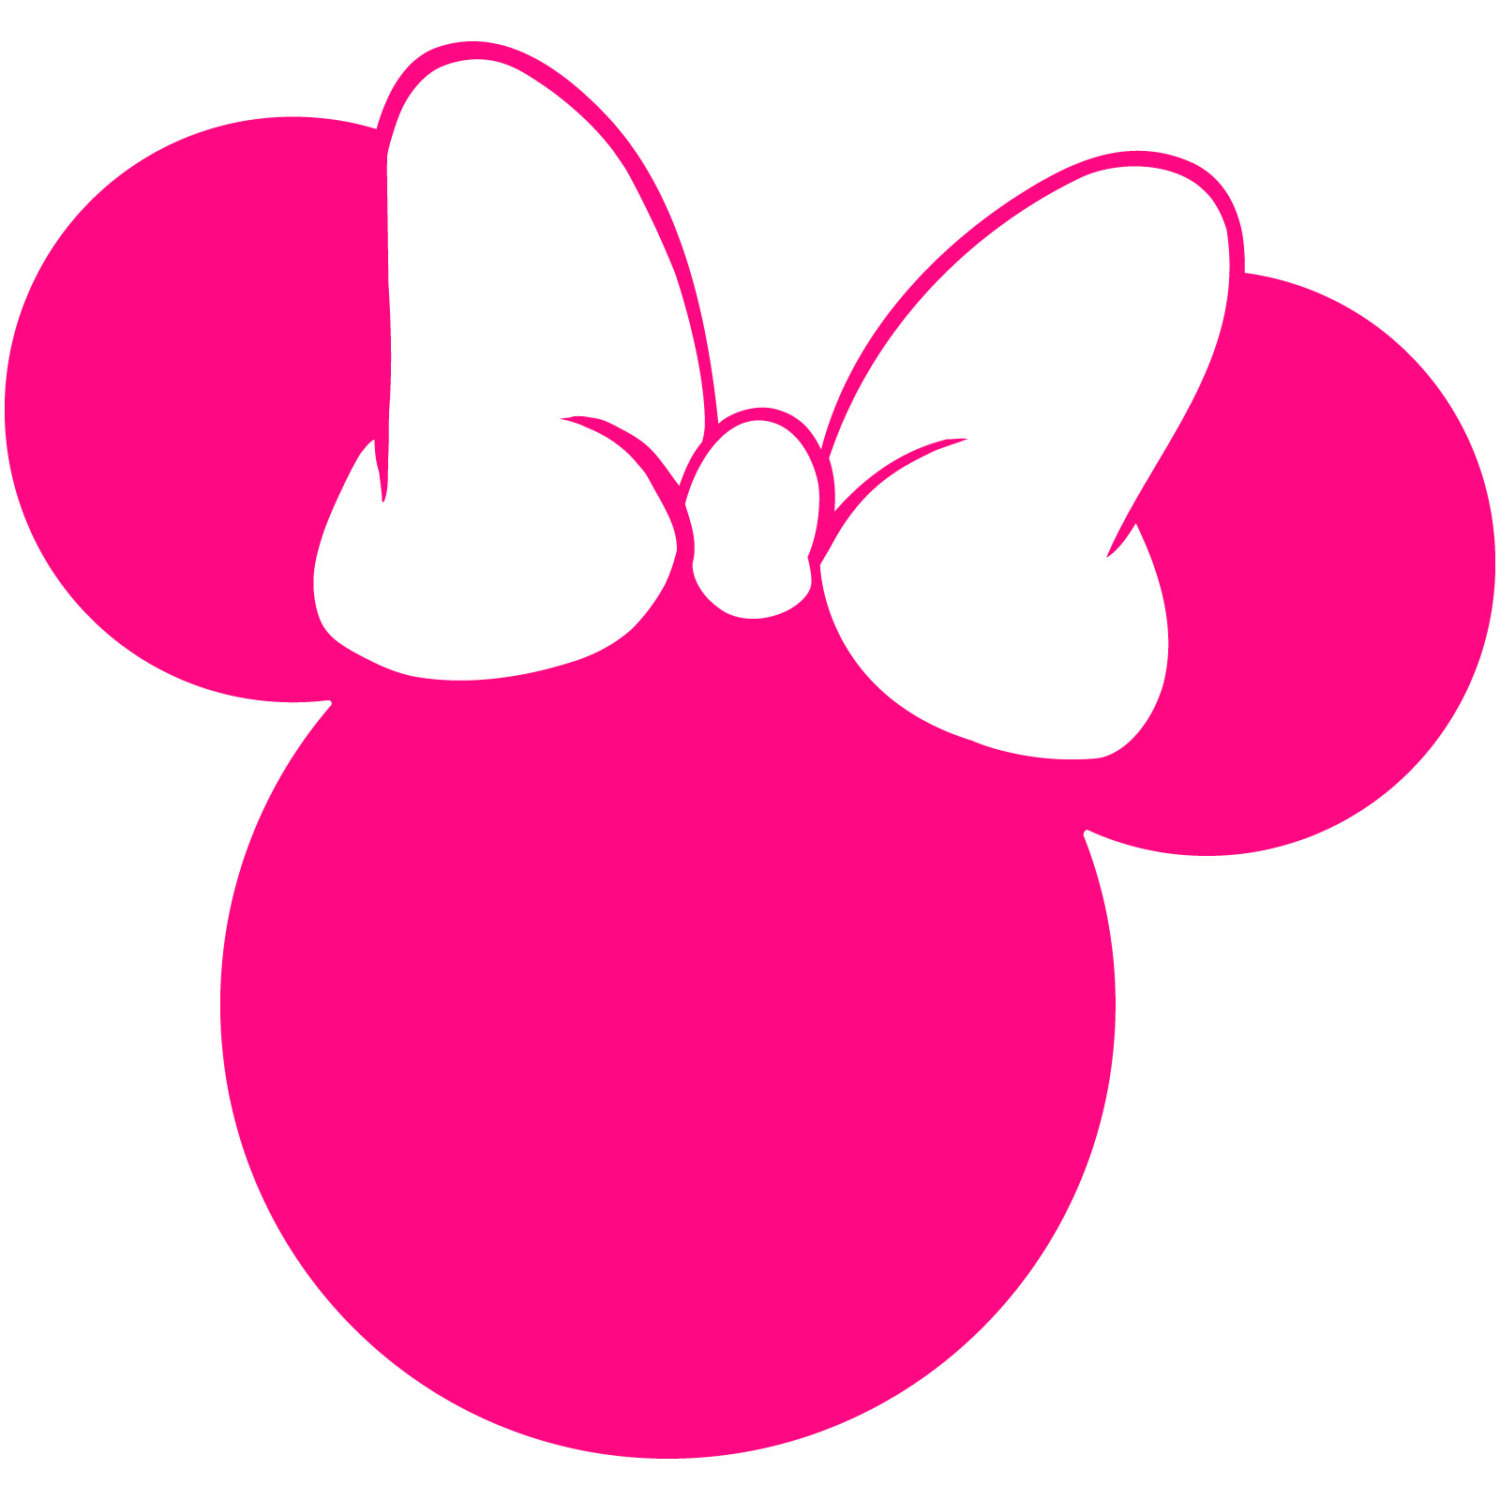 1500x1500 Minnie Mouse Head Silhouette Walt Disney Disneyland World